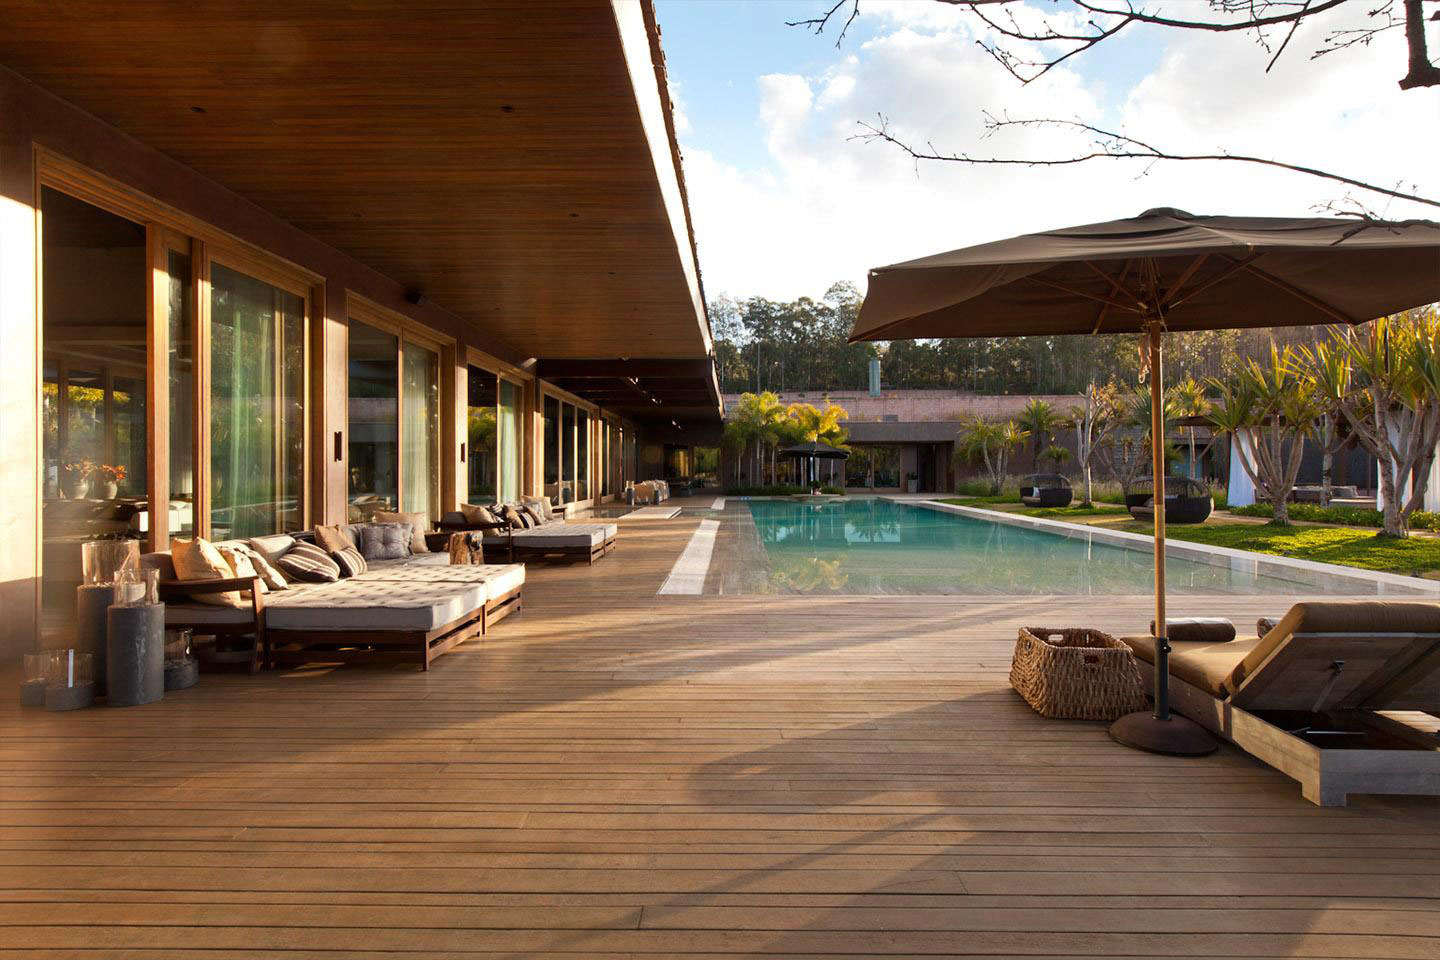 Deck terrace outdoor pool furniture house in nova lima for Bois exotique piscine